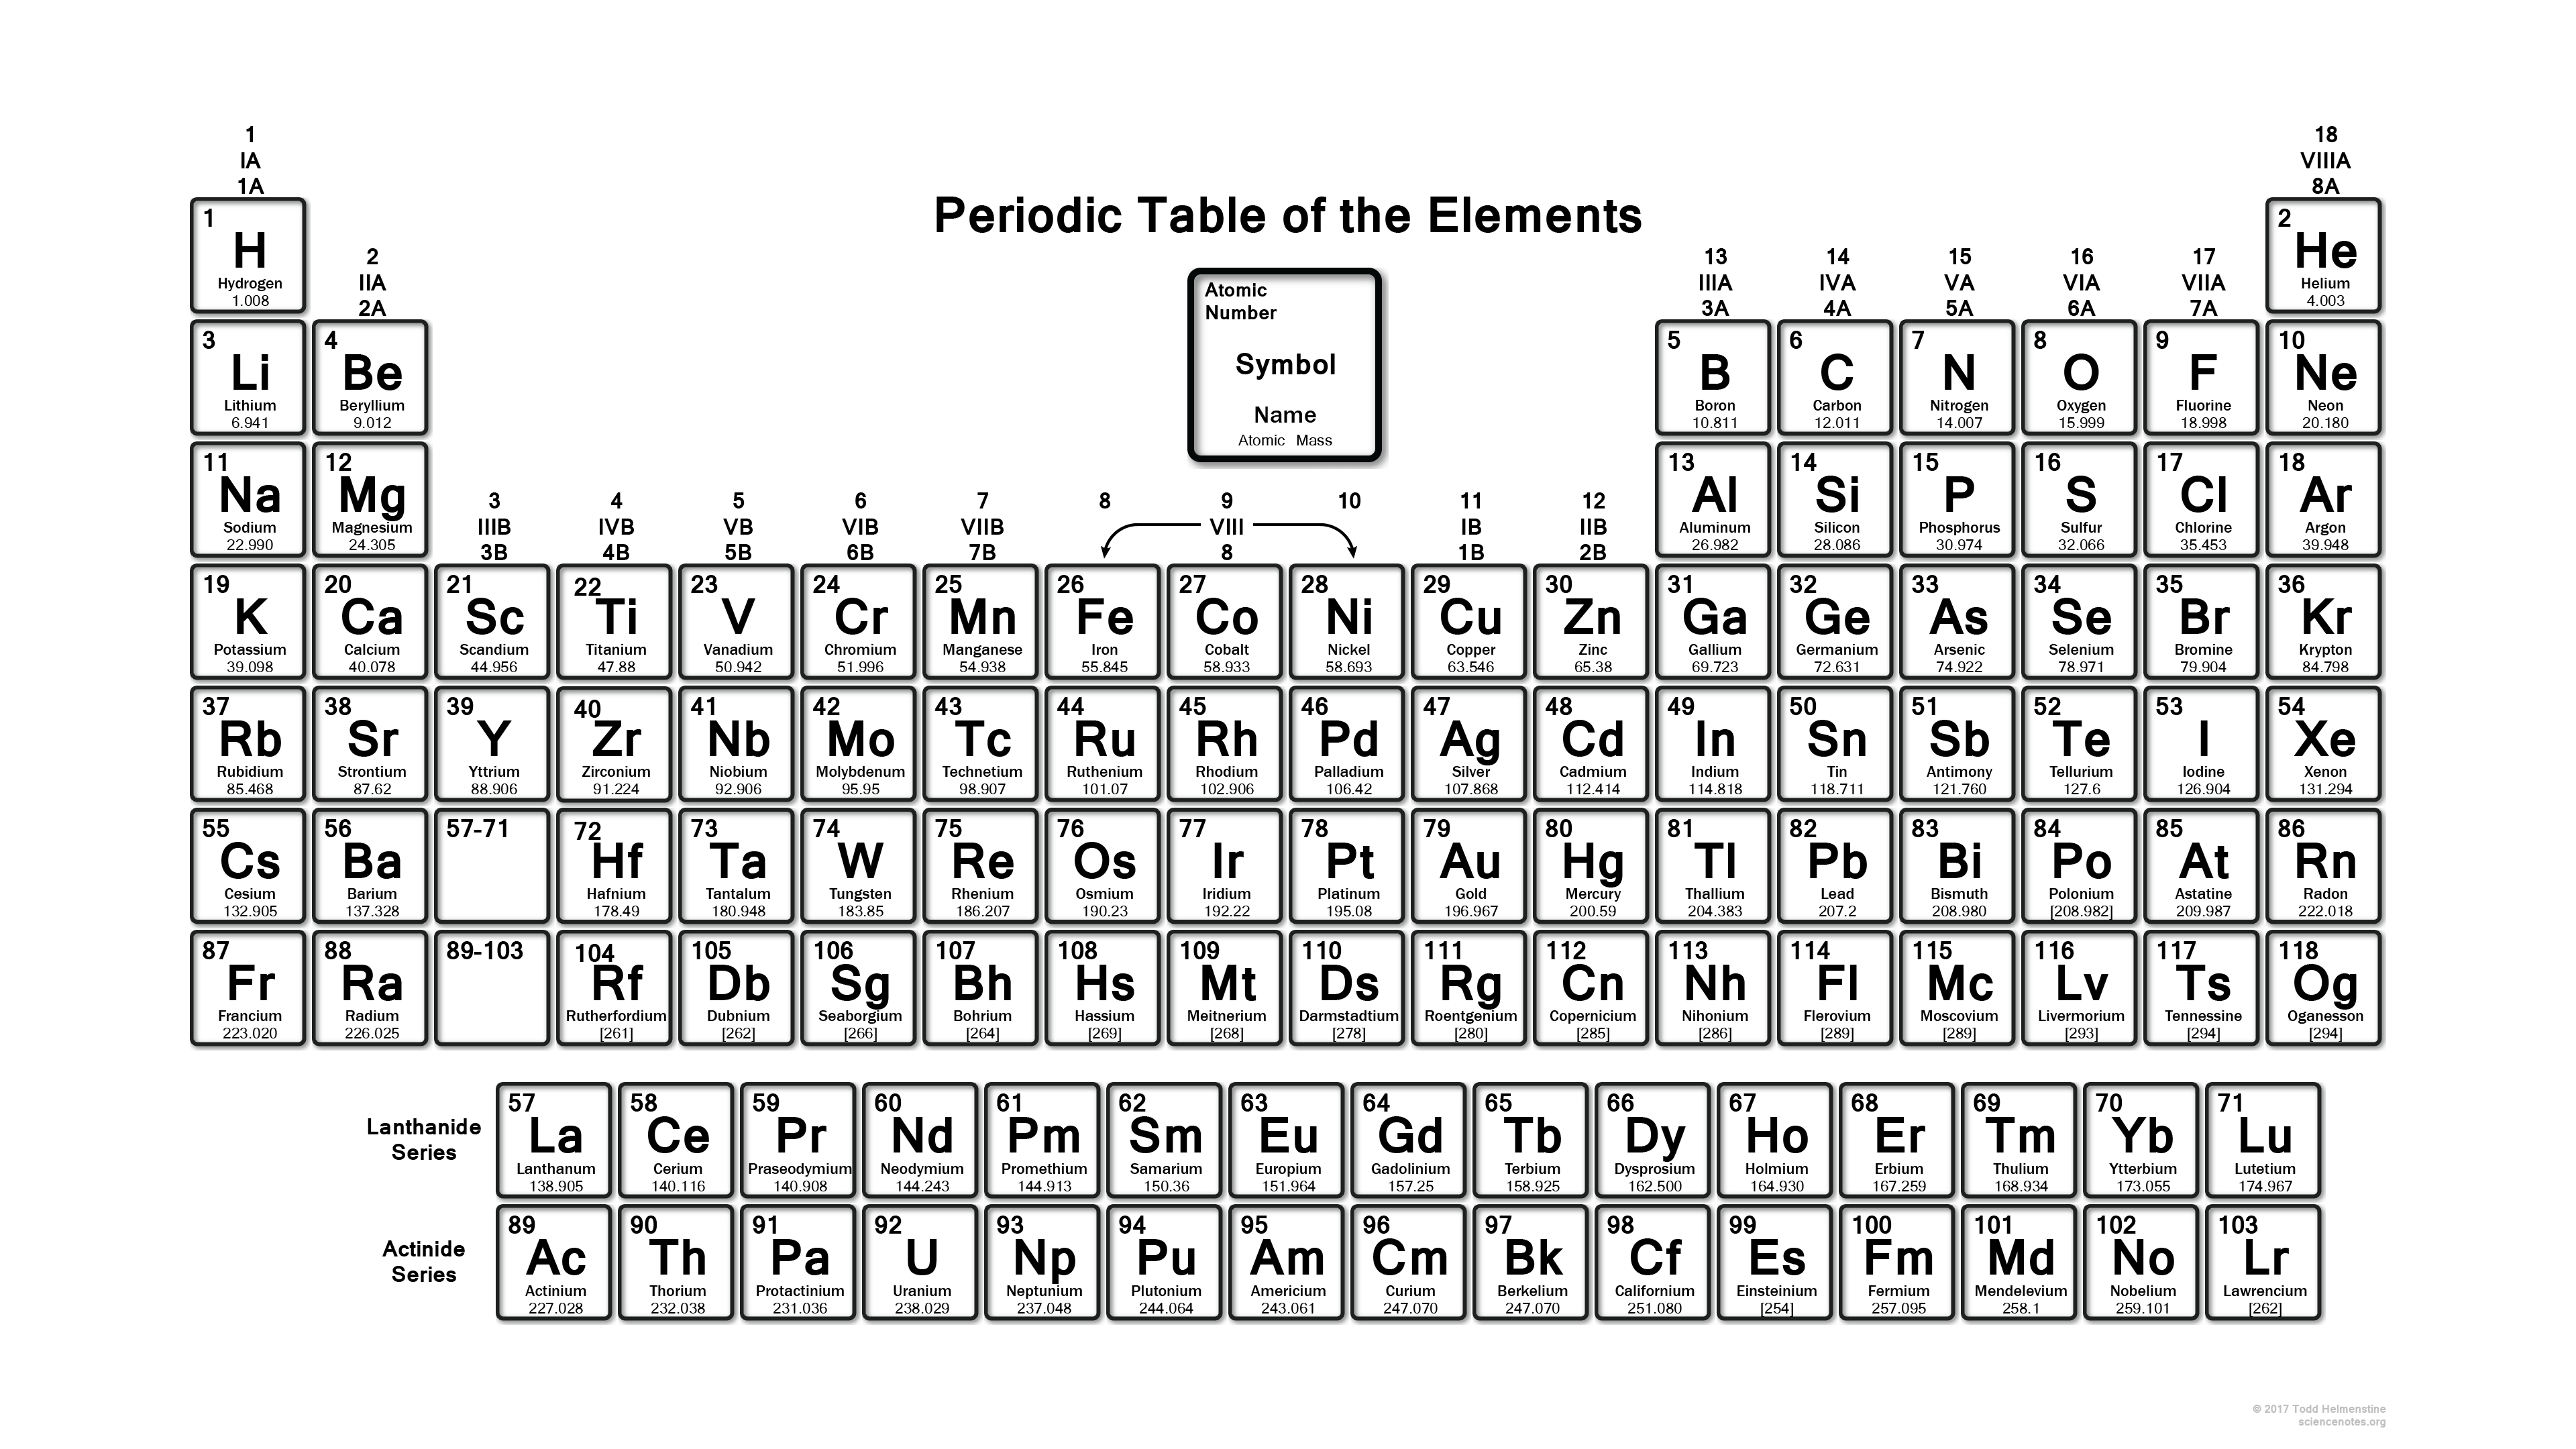 Periodic table in black and white